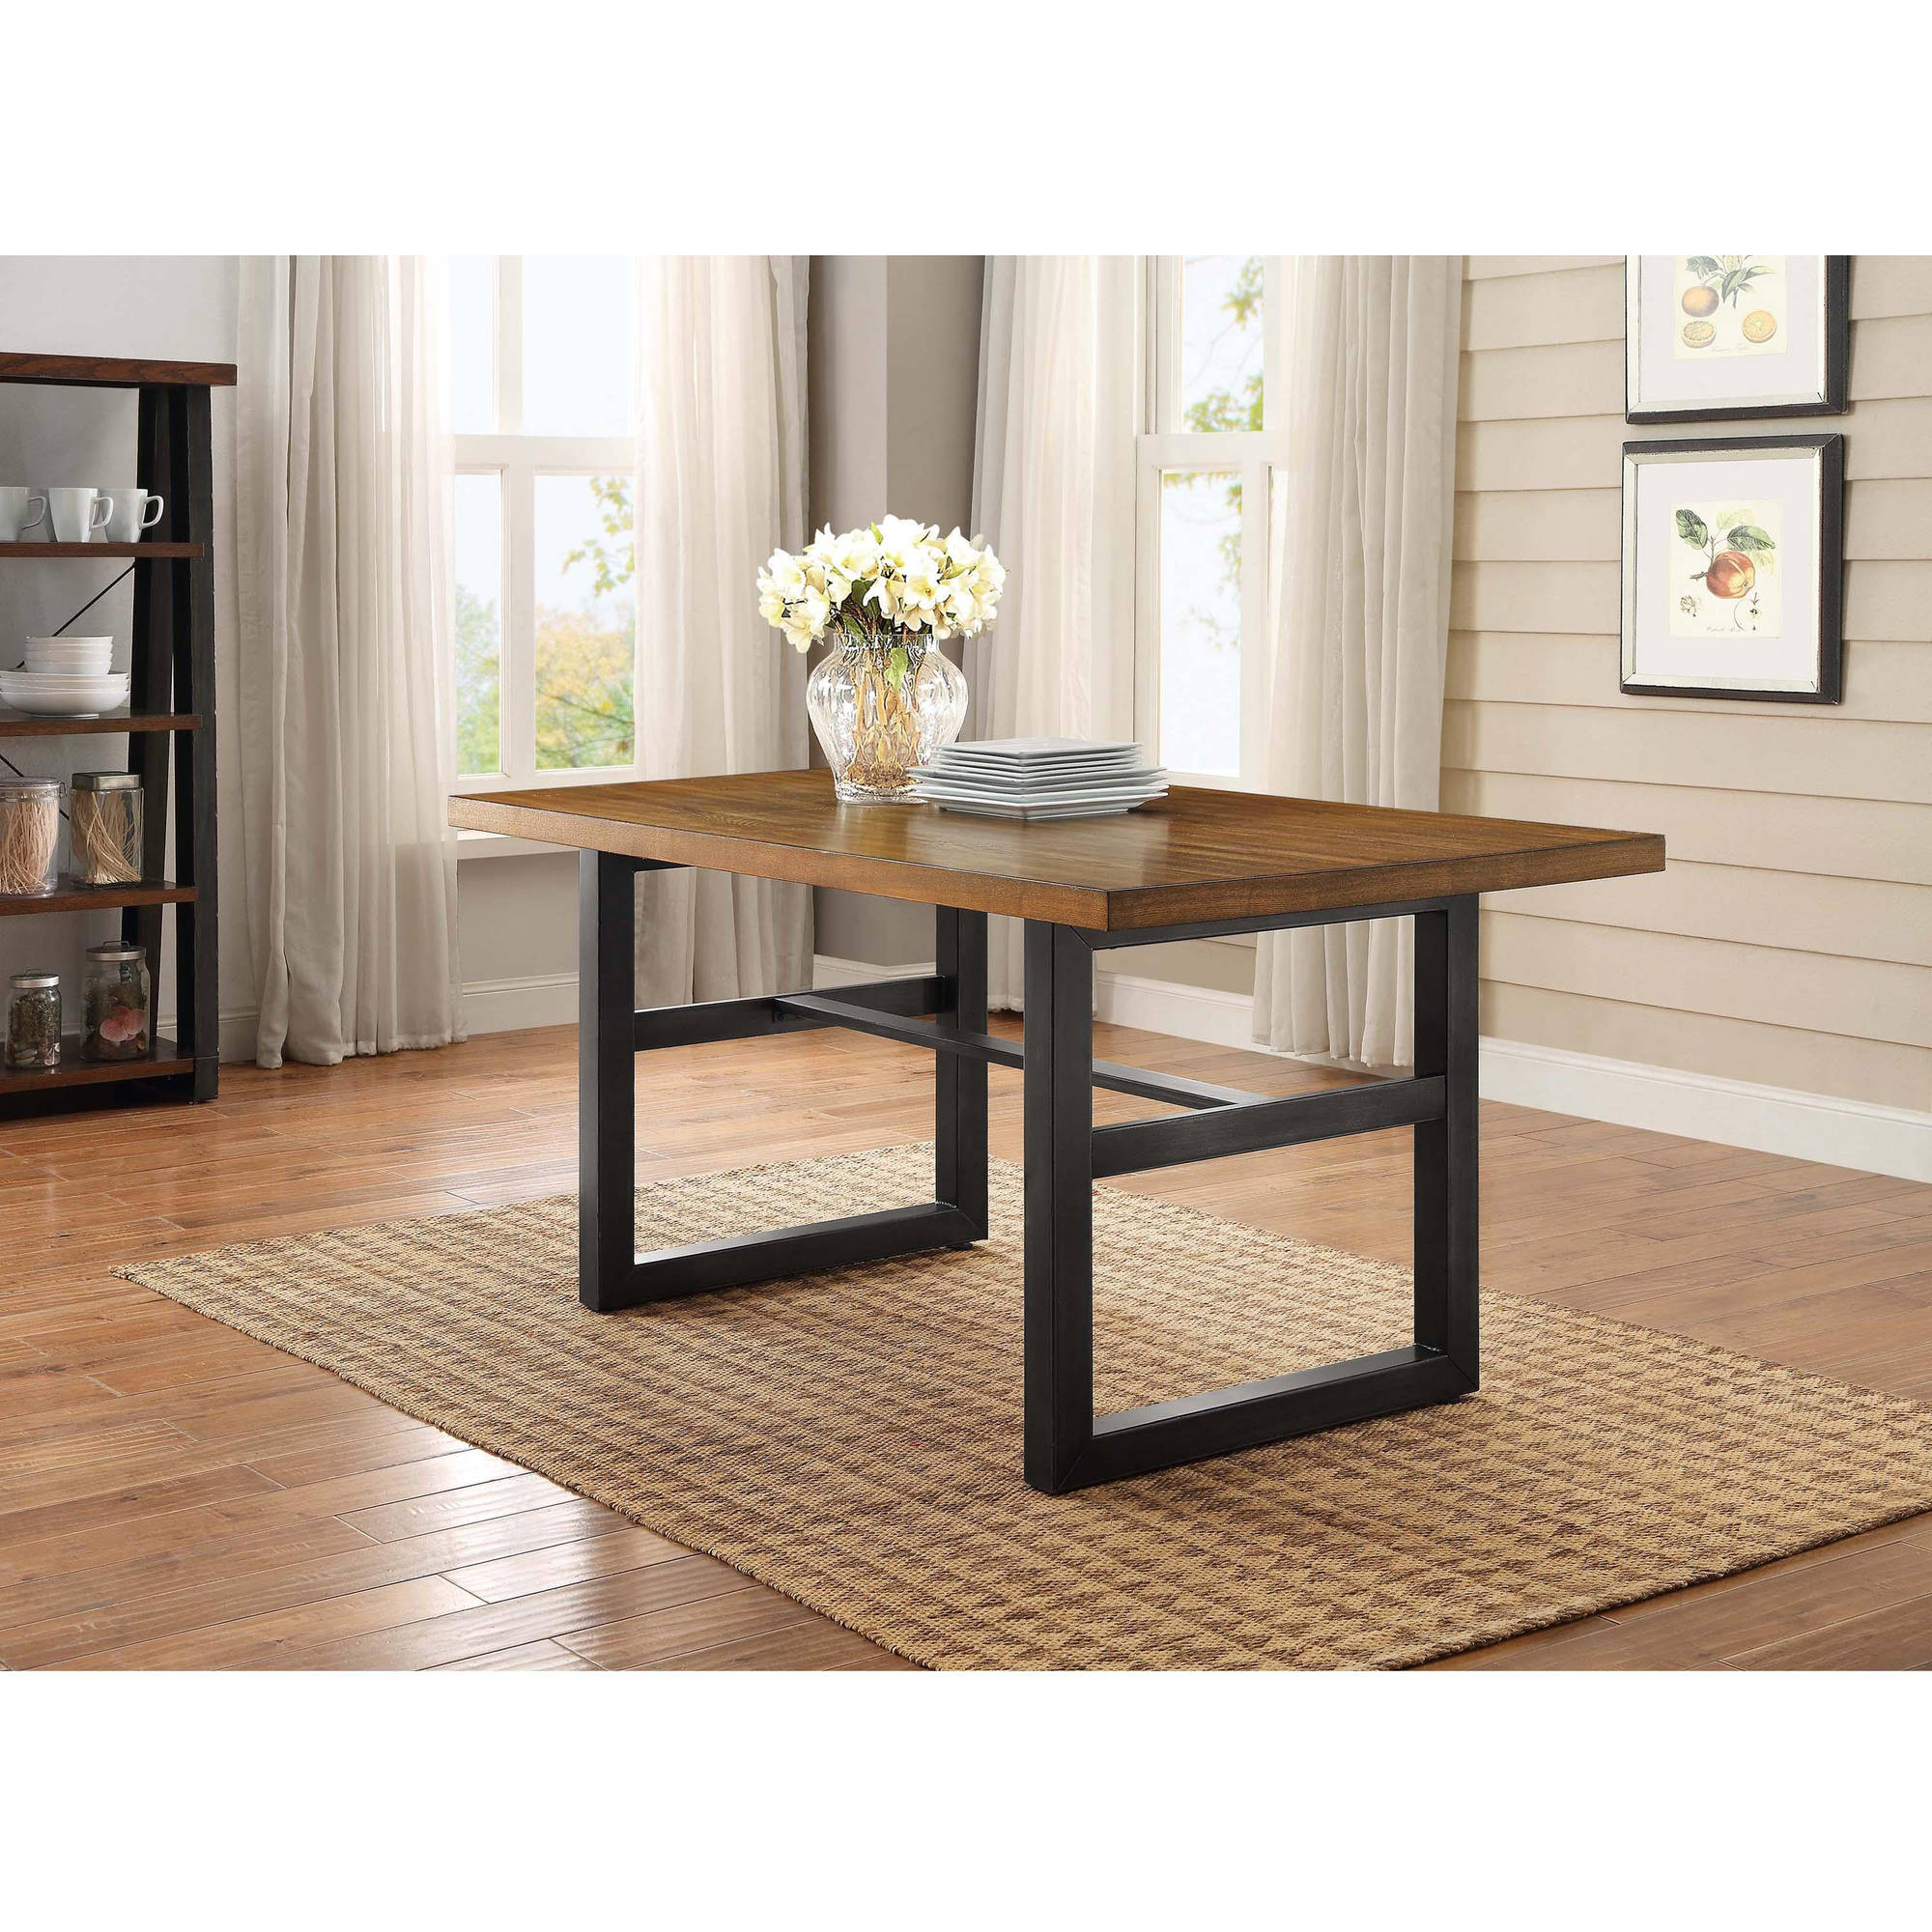 Better Homes and Gardens Mercer 3 Piece Dining Set Walmart